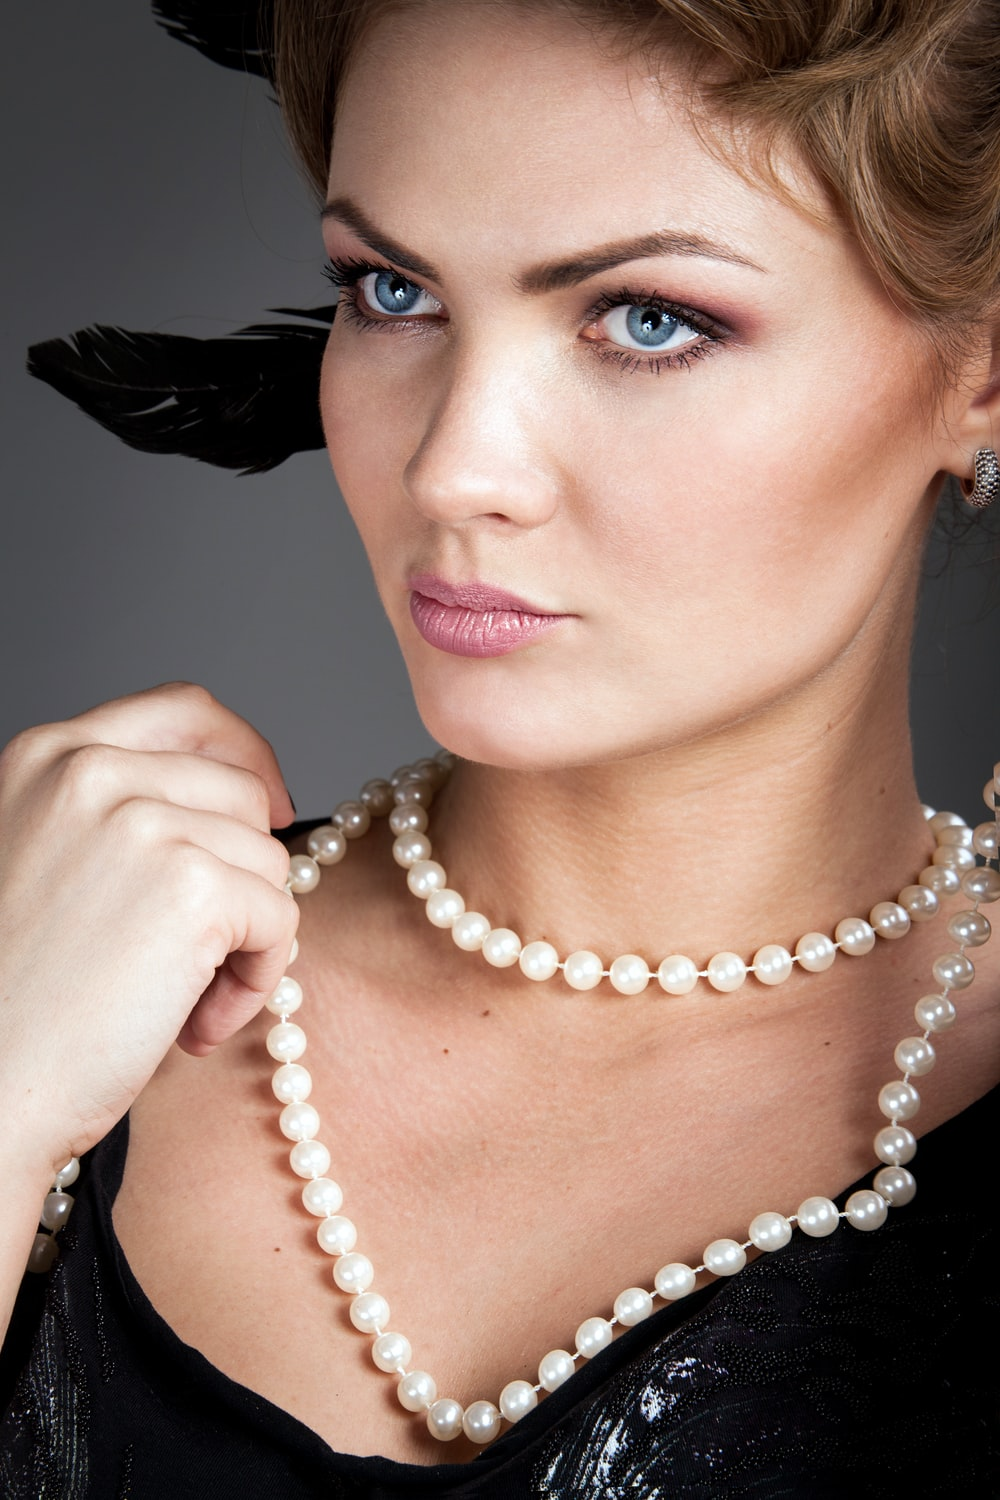 woman holding her white beaded necklace